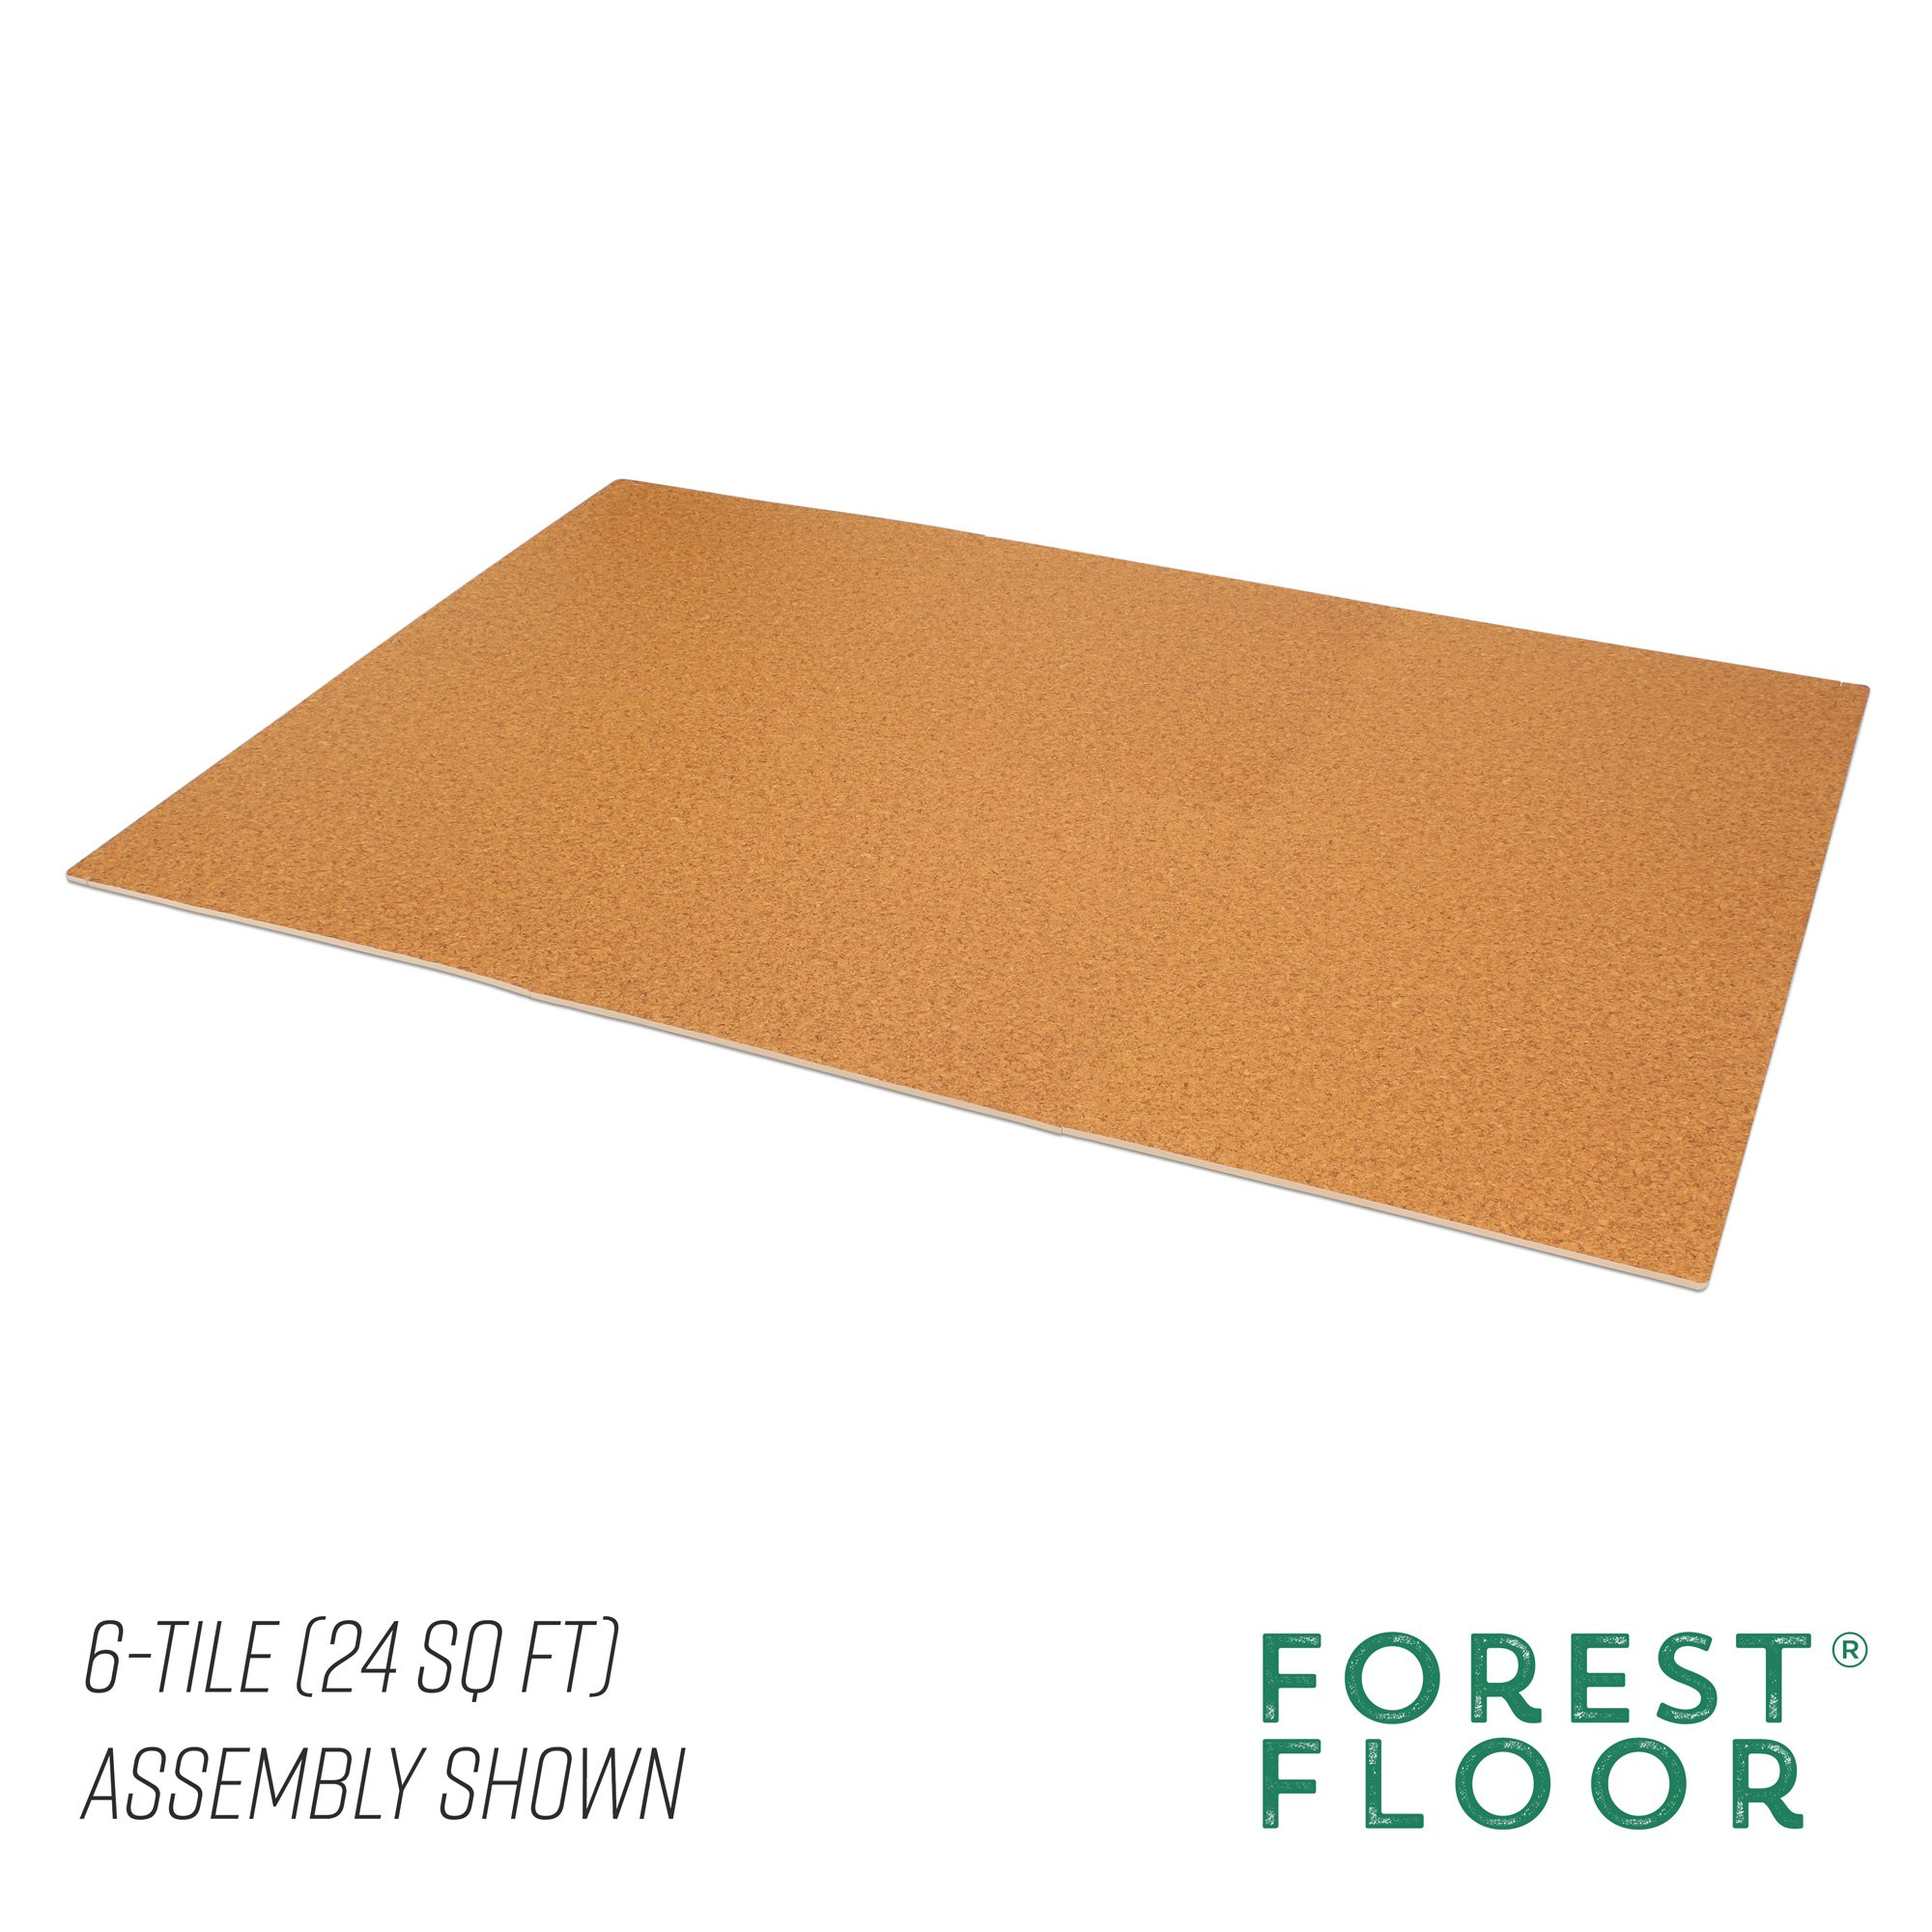 Forest Floor 3/8'' Thick Printed Wood Grain Interlocking Foam Floor Mats, 16 Sq Ft (4 Tiles), Light Cork by Forest Floor (Image #5)